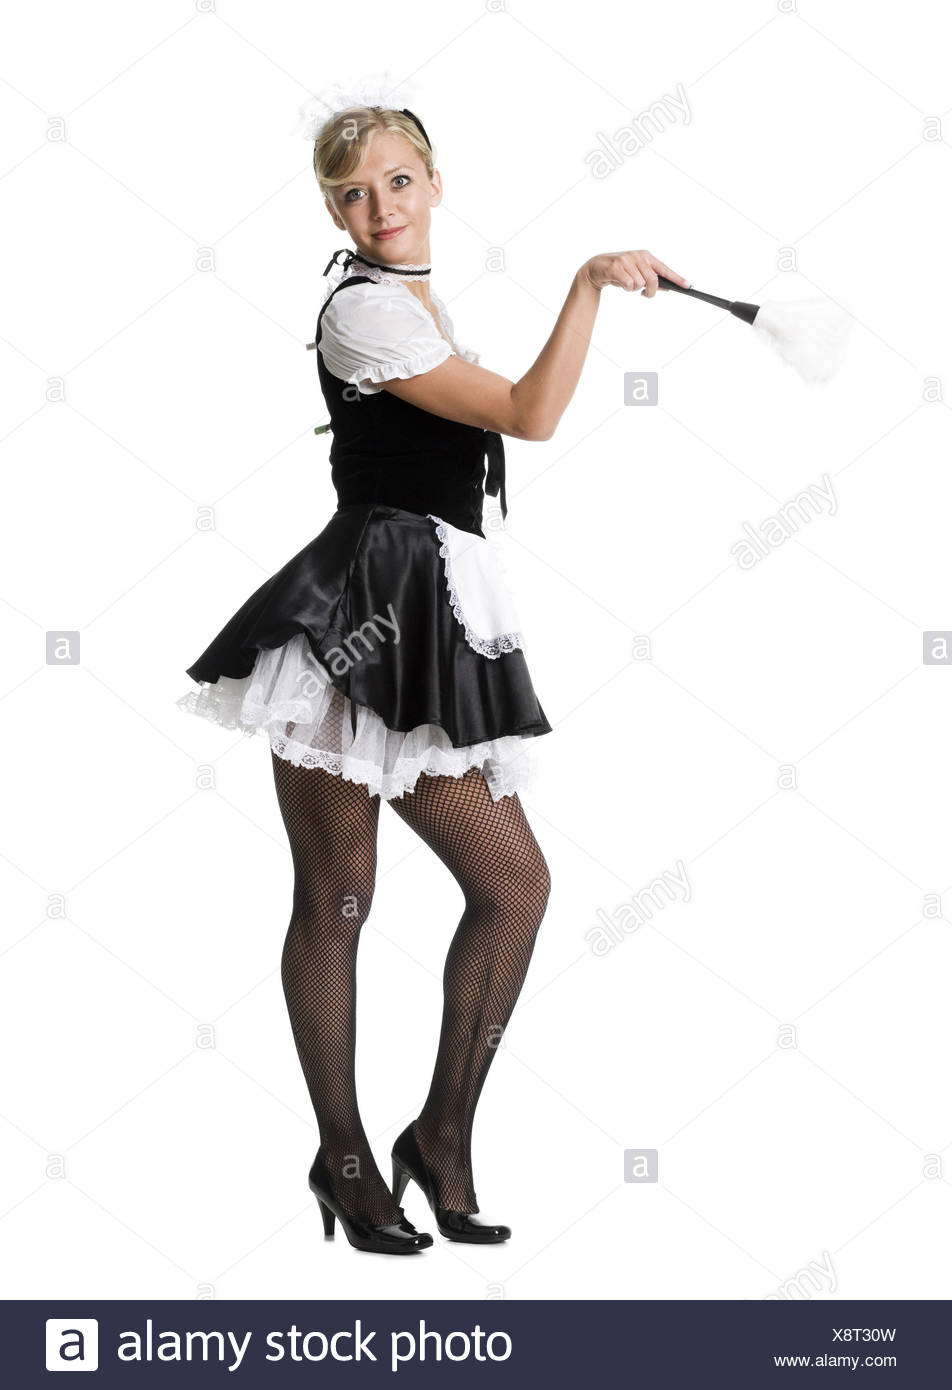 French Maid Stock Photos French Maid Stock Images Alamy